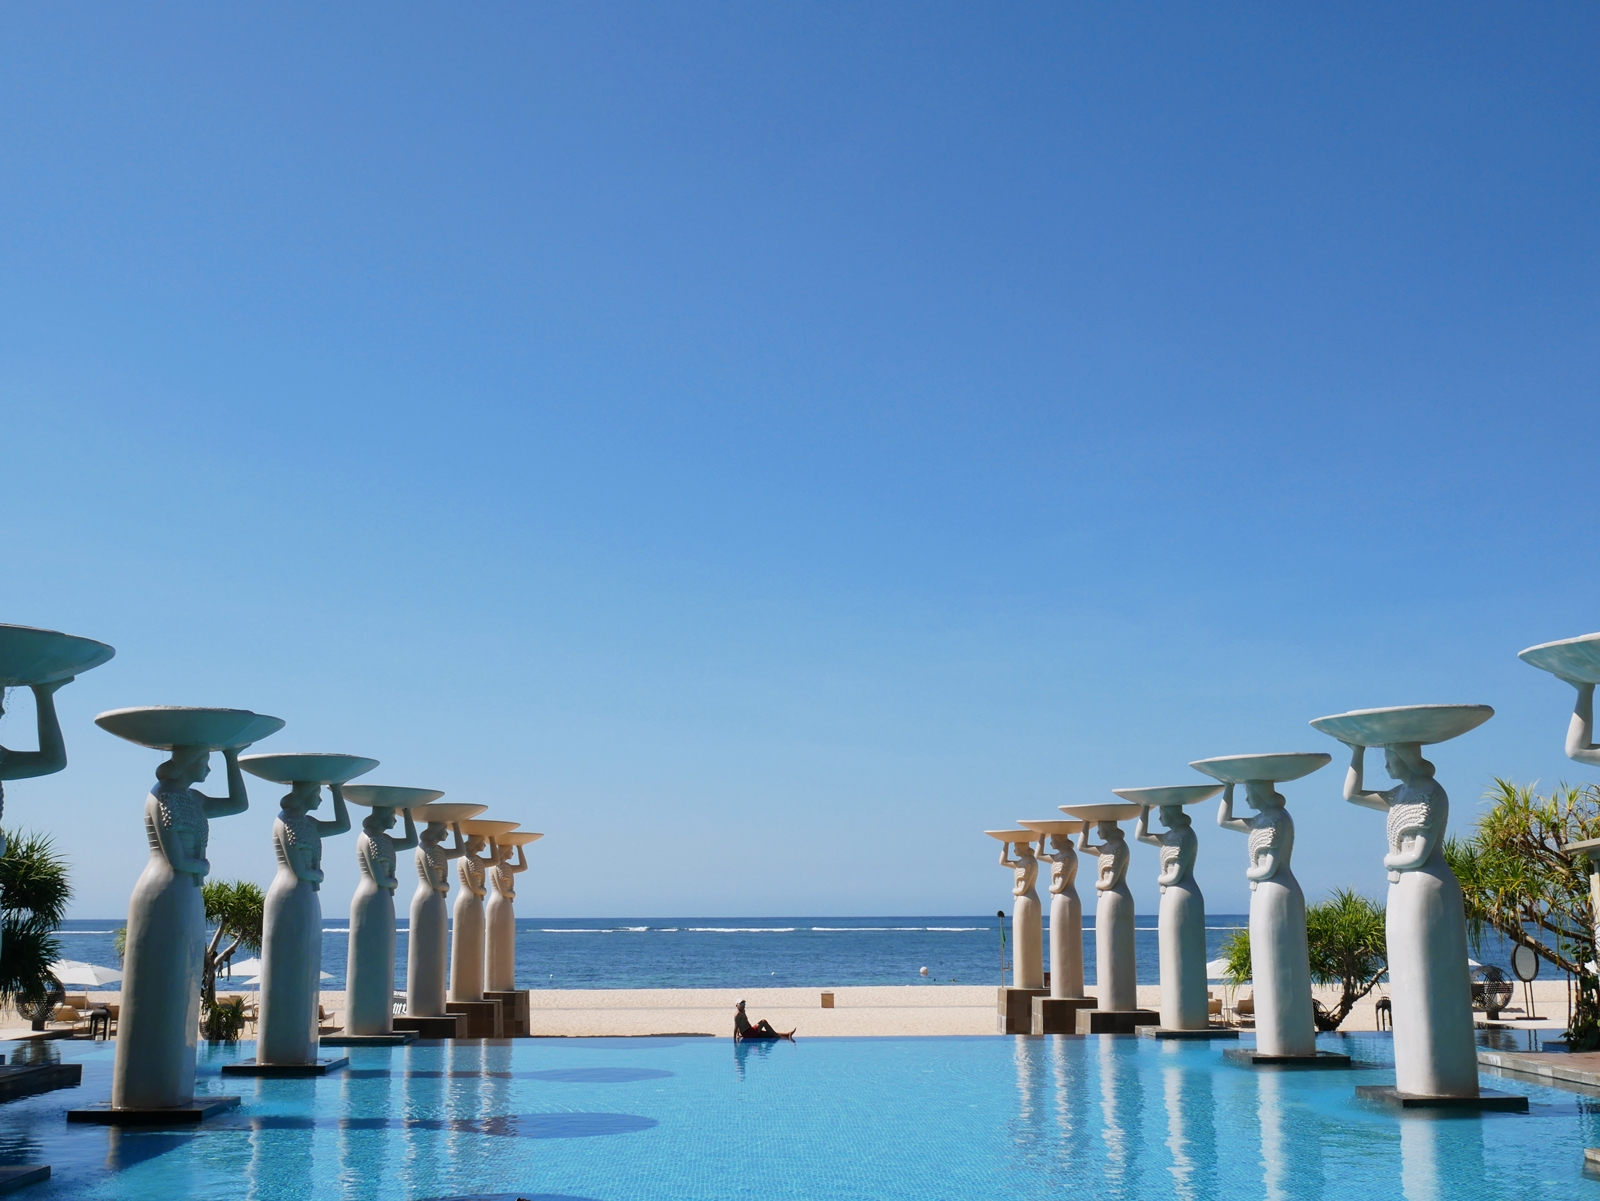 DELUXSHIONIST CHECK IN TO THE MULIA BALI, THE BIGGEST RESORT & VILLAS COMPLEX IN NUSA DUA